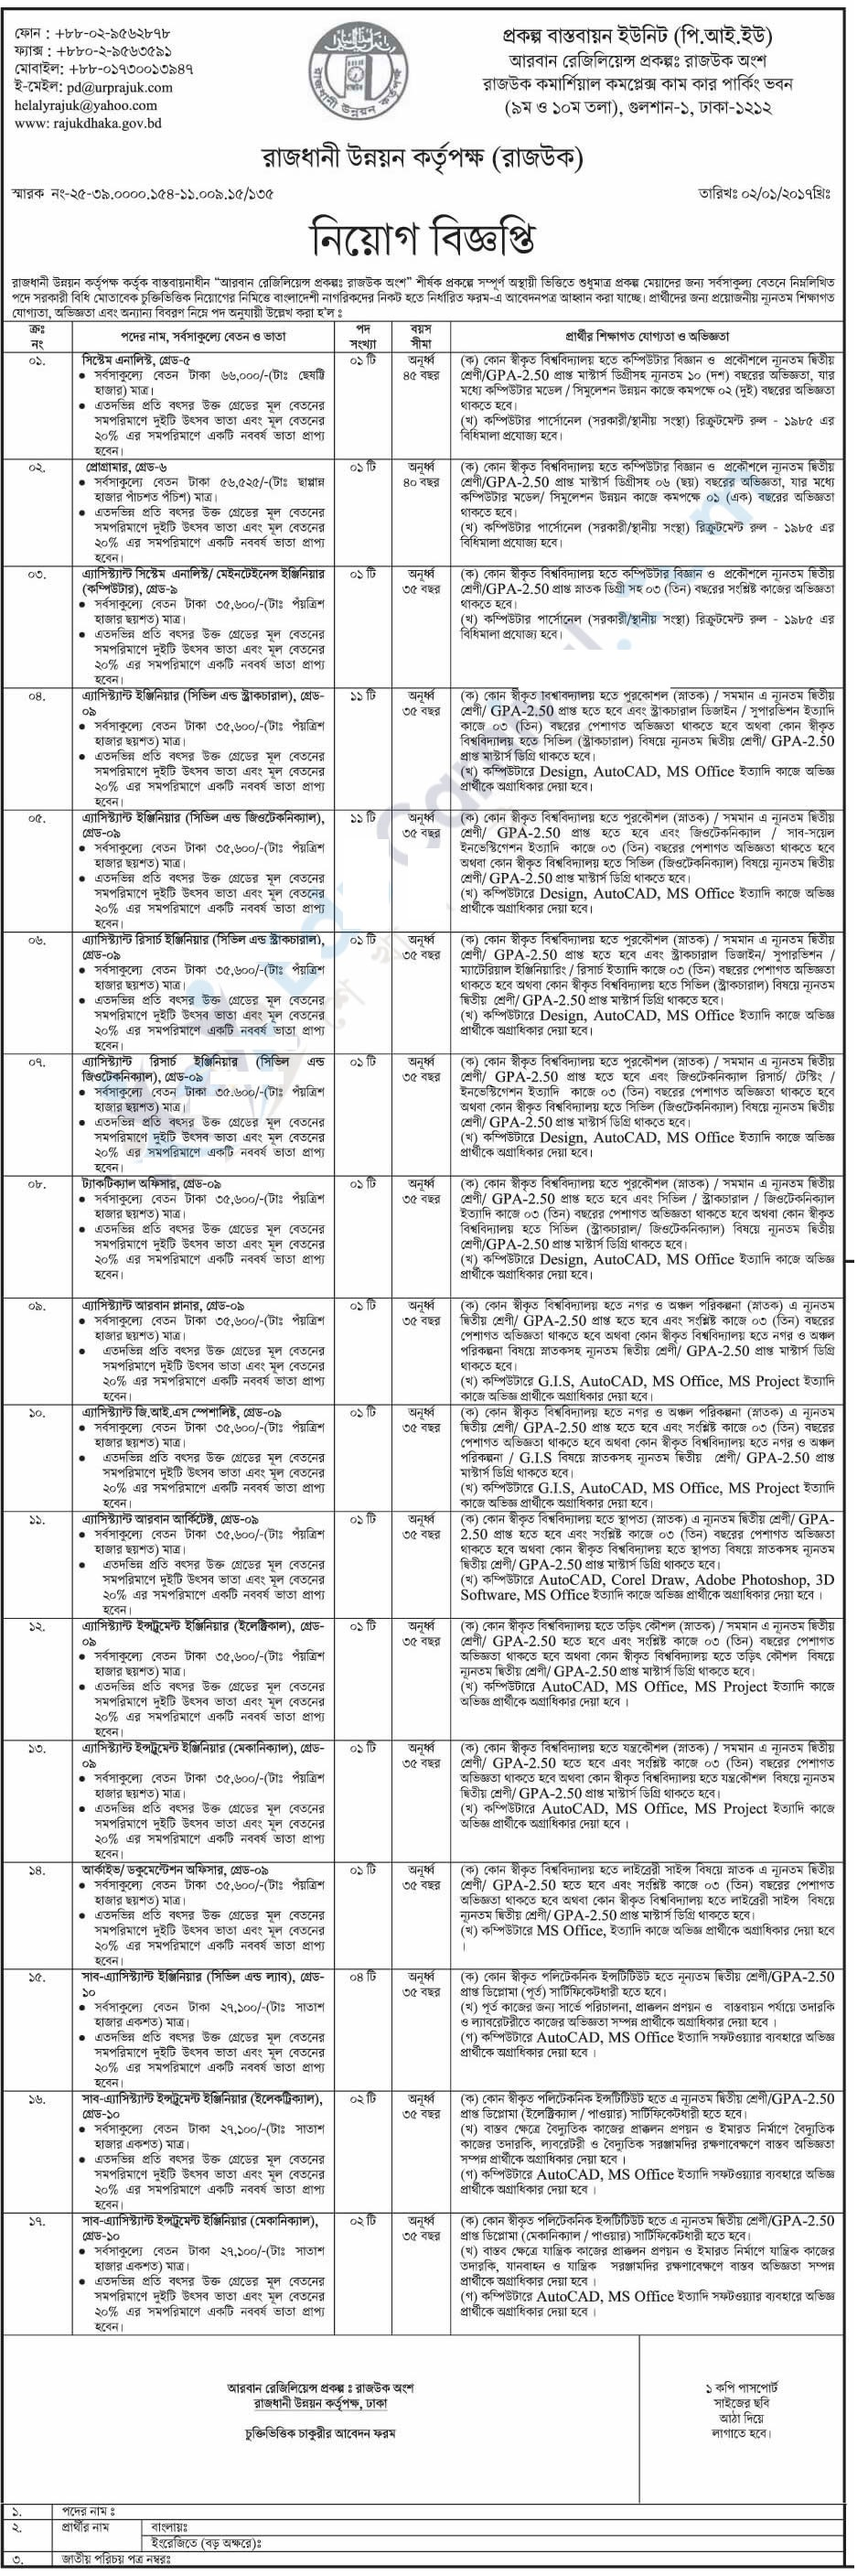 Bangladesh Capital Development Authority (RAJUK) Job Circular January 2017